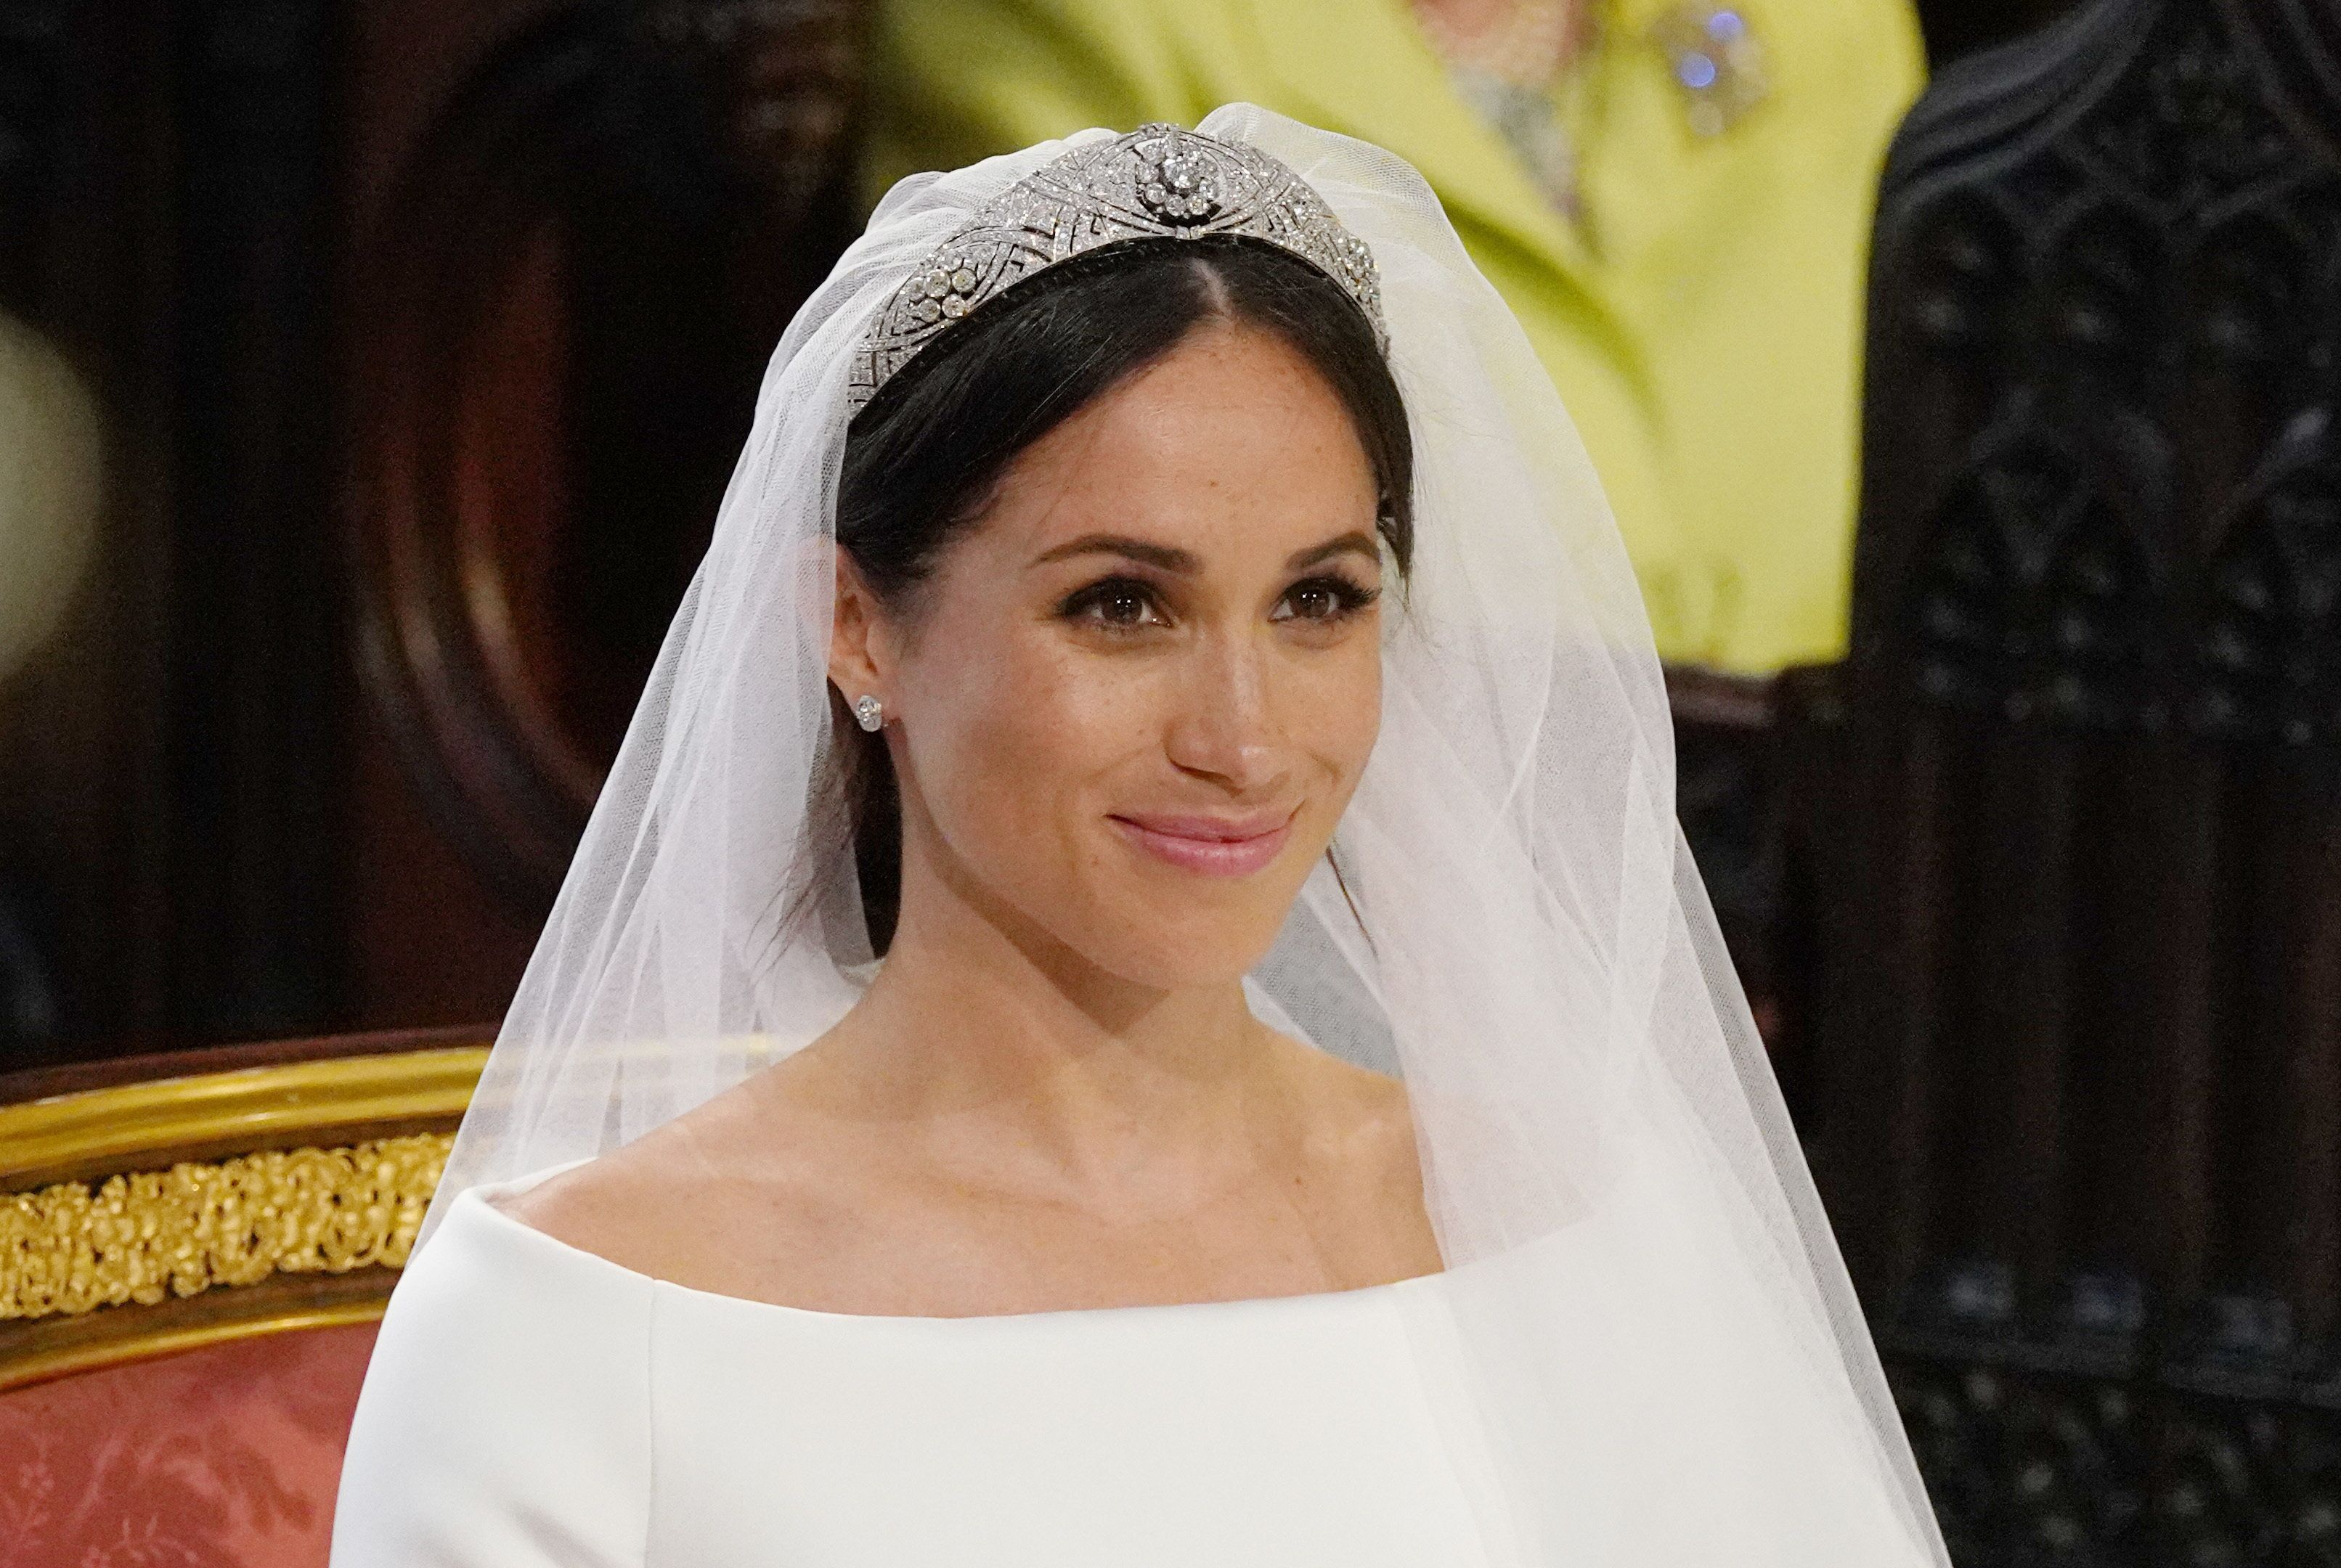 Meghan Markle in St. George's Chapel at Windsor Castle on her wedding day, May 19.